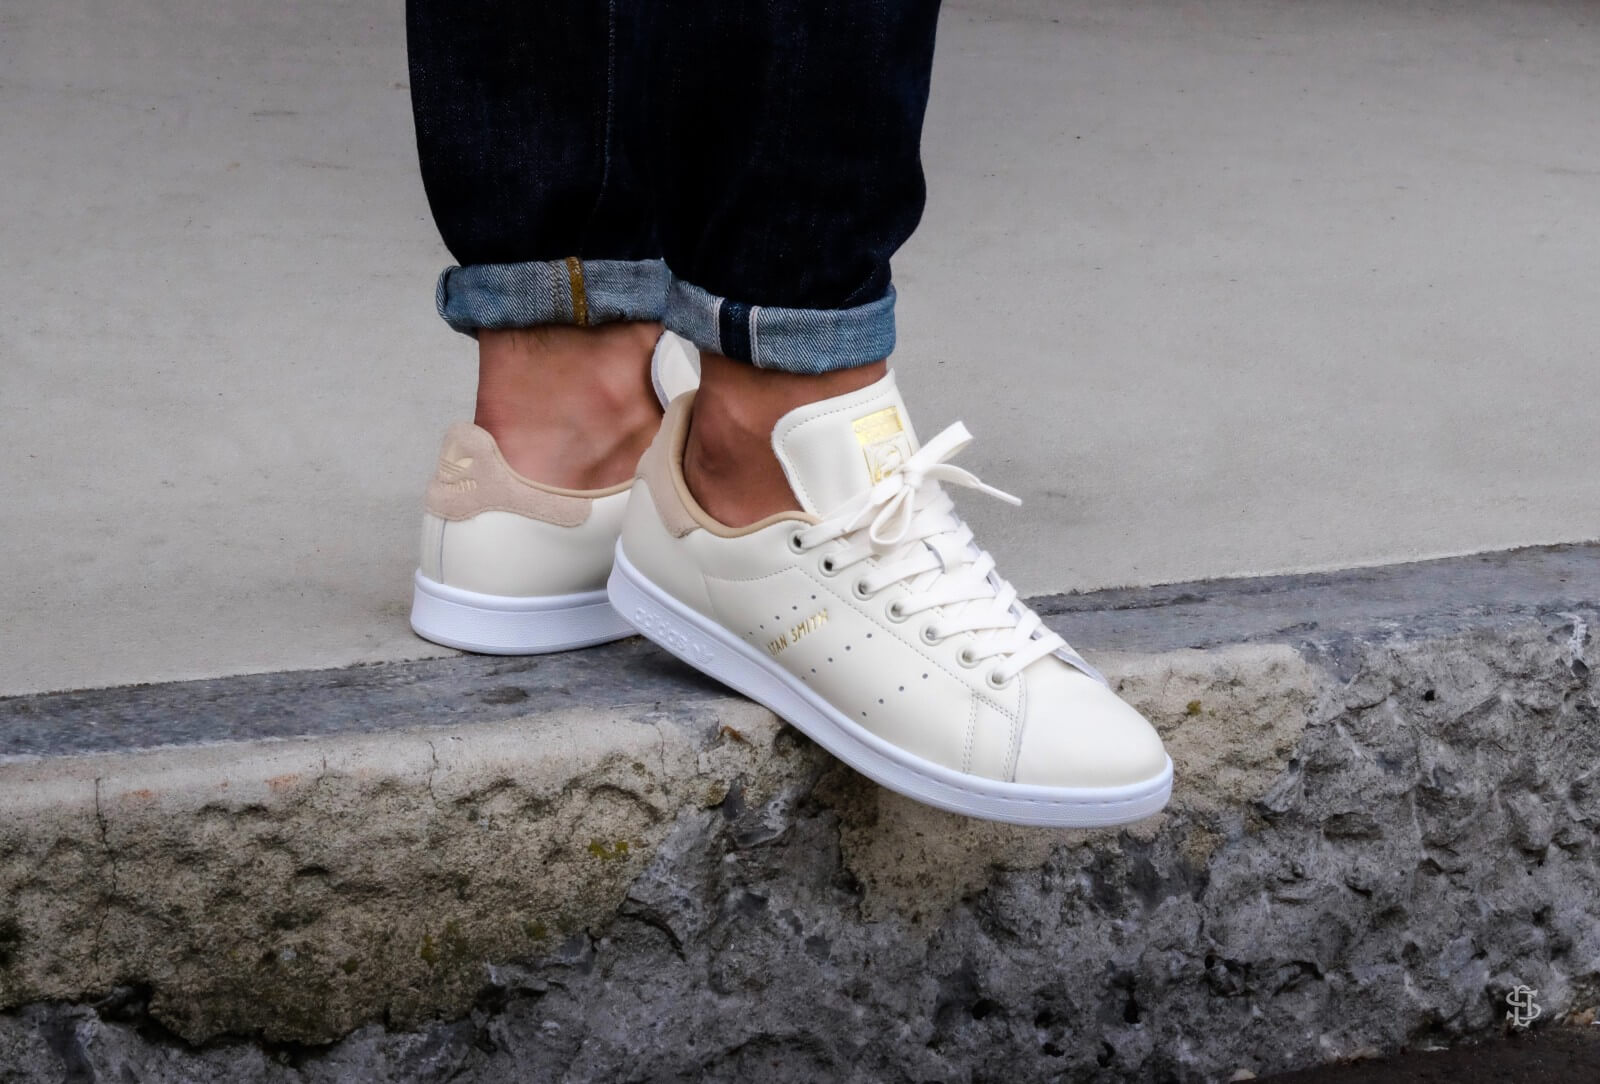 Shop for Women's Stan Smith Nuud Shoes Grey at adidas.ca